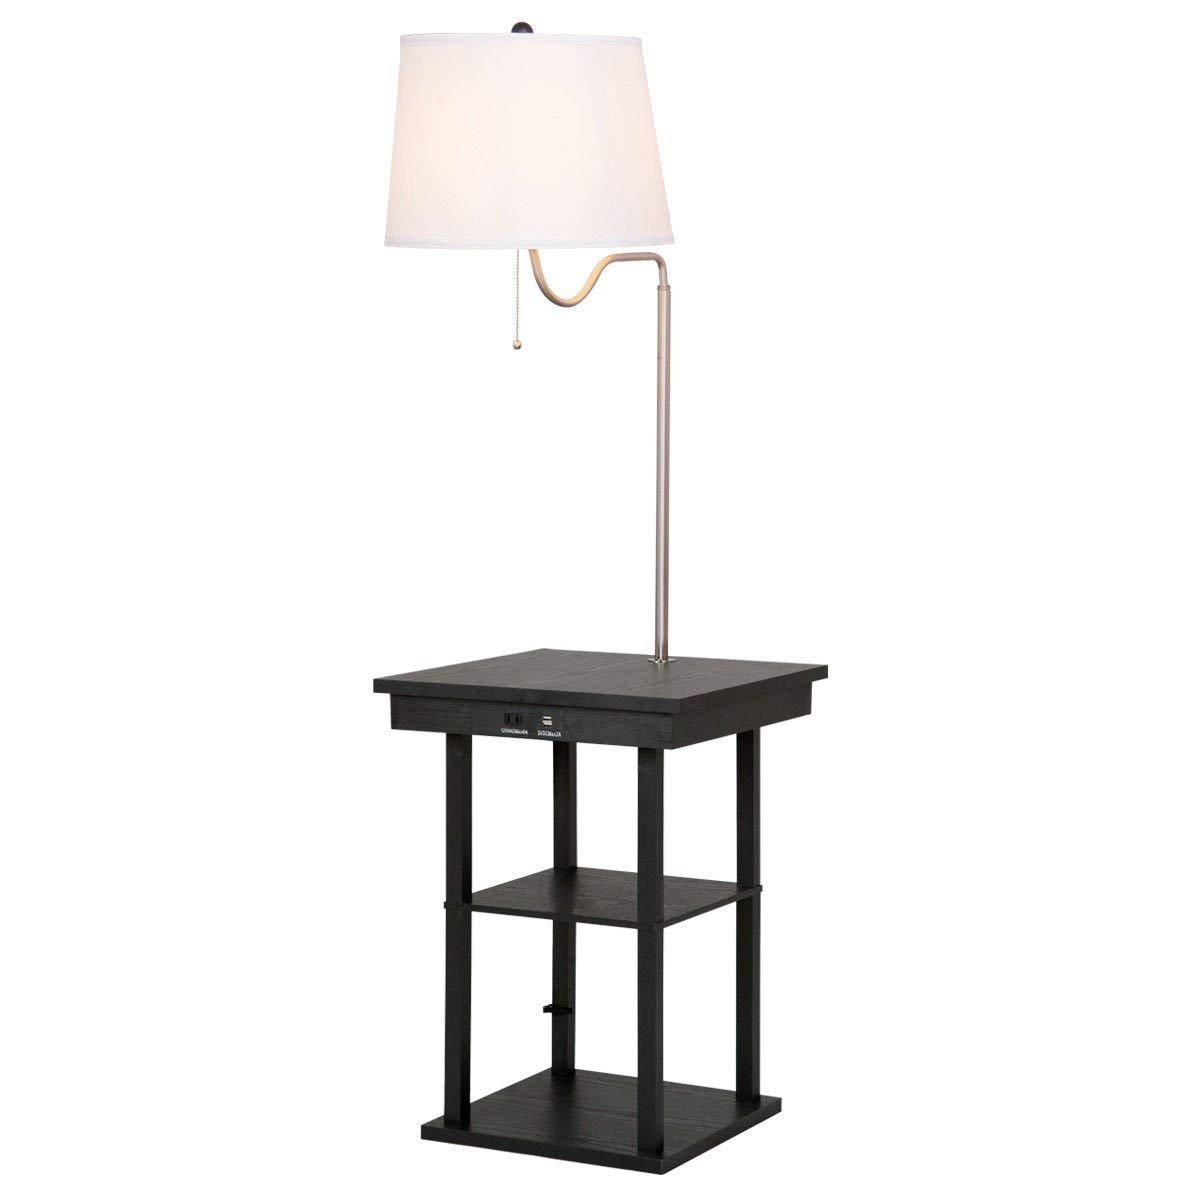 Table Swing Arm Floor Lamp With Shade 2 Usb Ports Swing Arm Floor Lamp Floor Lamp Lamp